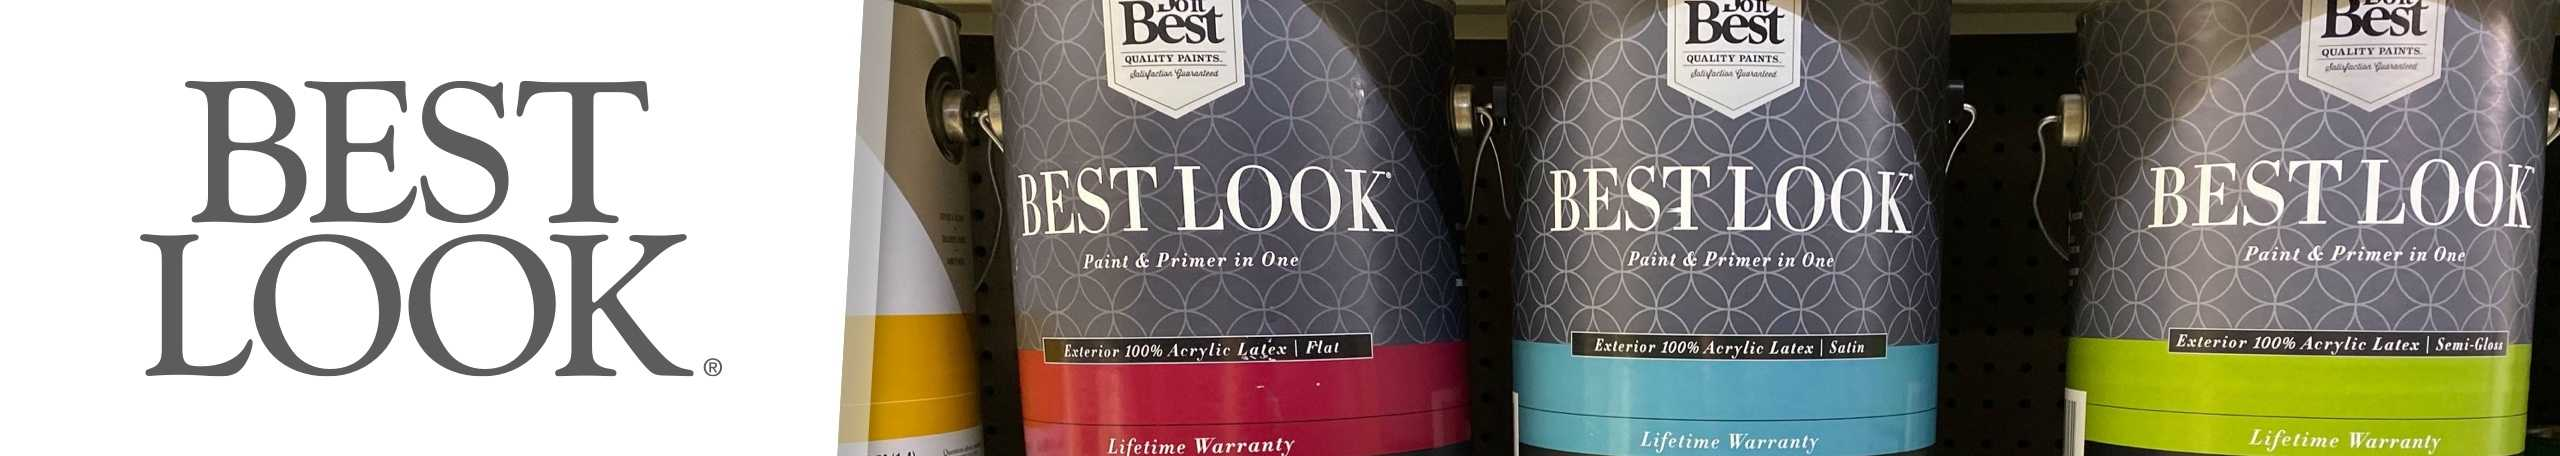 Best Look logo with Best Look paint cans